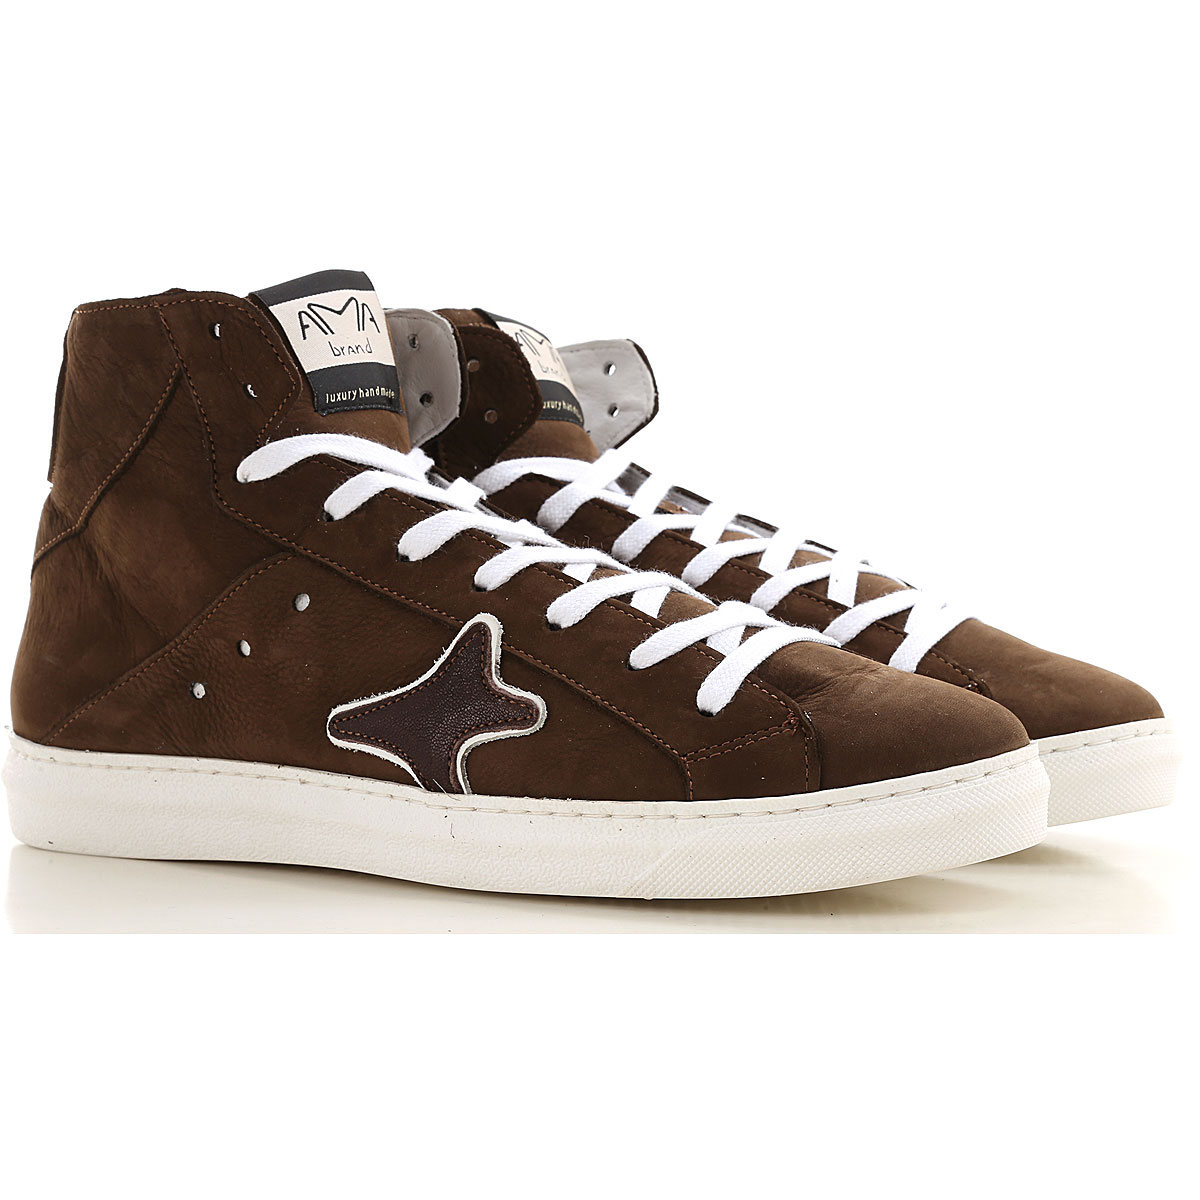 Ama Brand Sneakers for Men, Brown, Leather, 2019, EUR 40 - UK 6 - USA 7 EUR 42 - UK 8 - USA 8.5 EUR 43 - UK 9 - USA 9.5 EUR 44 - UK 9.5 - USA 10 EUR 4